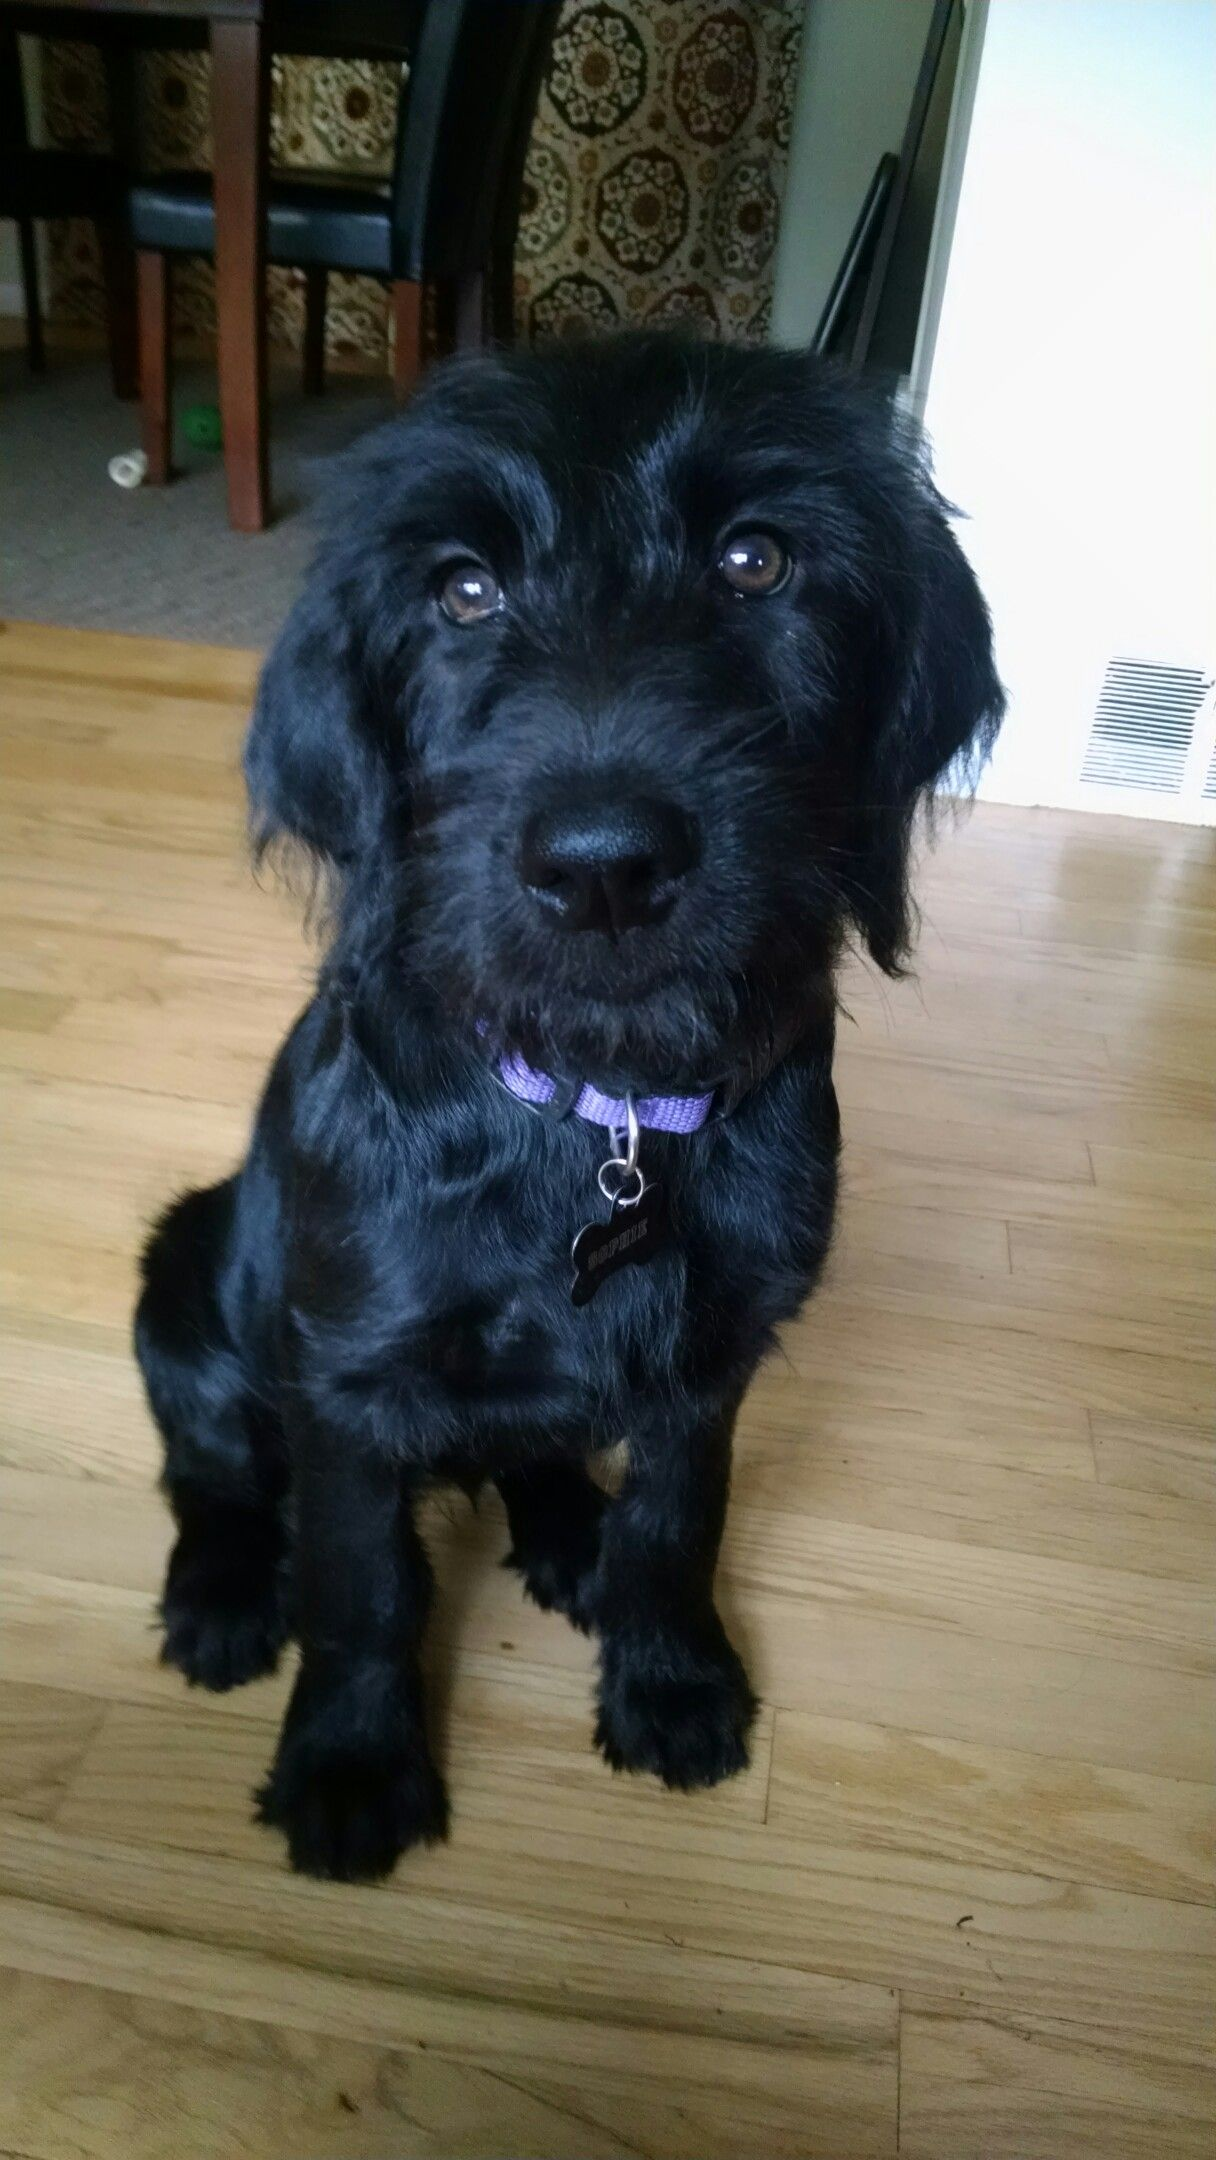 F1 Black Labradoodle Puppy Those Eyes Labradoodle Puppy